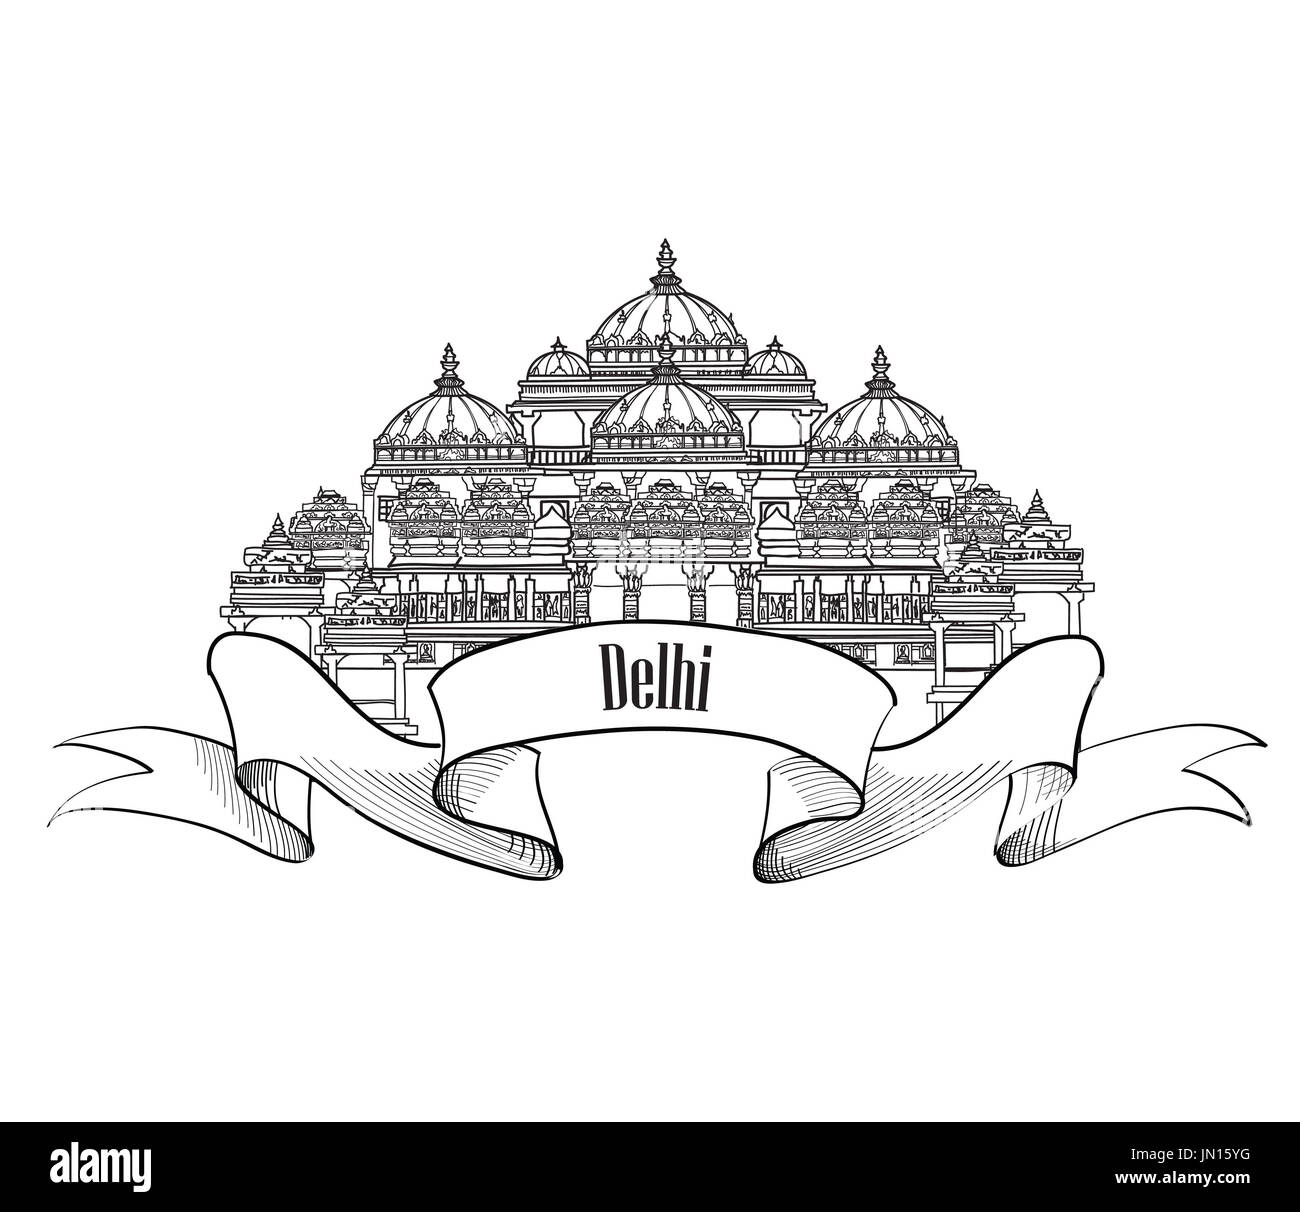 Delhi travel label.  Indian Landmark symbol. Akshardham, Delhi, India. - Stock Image